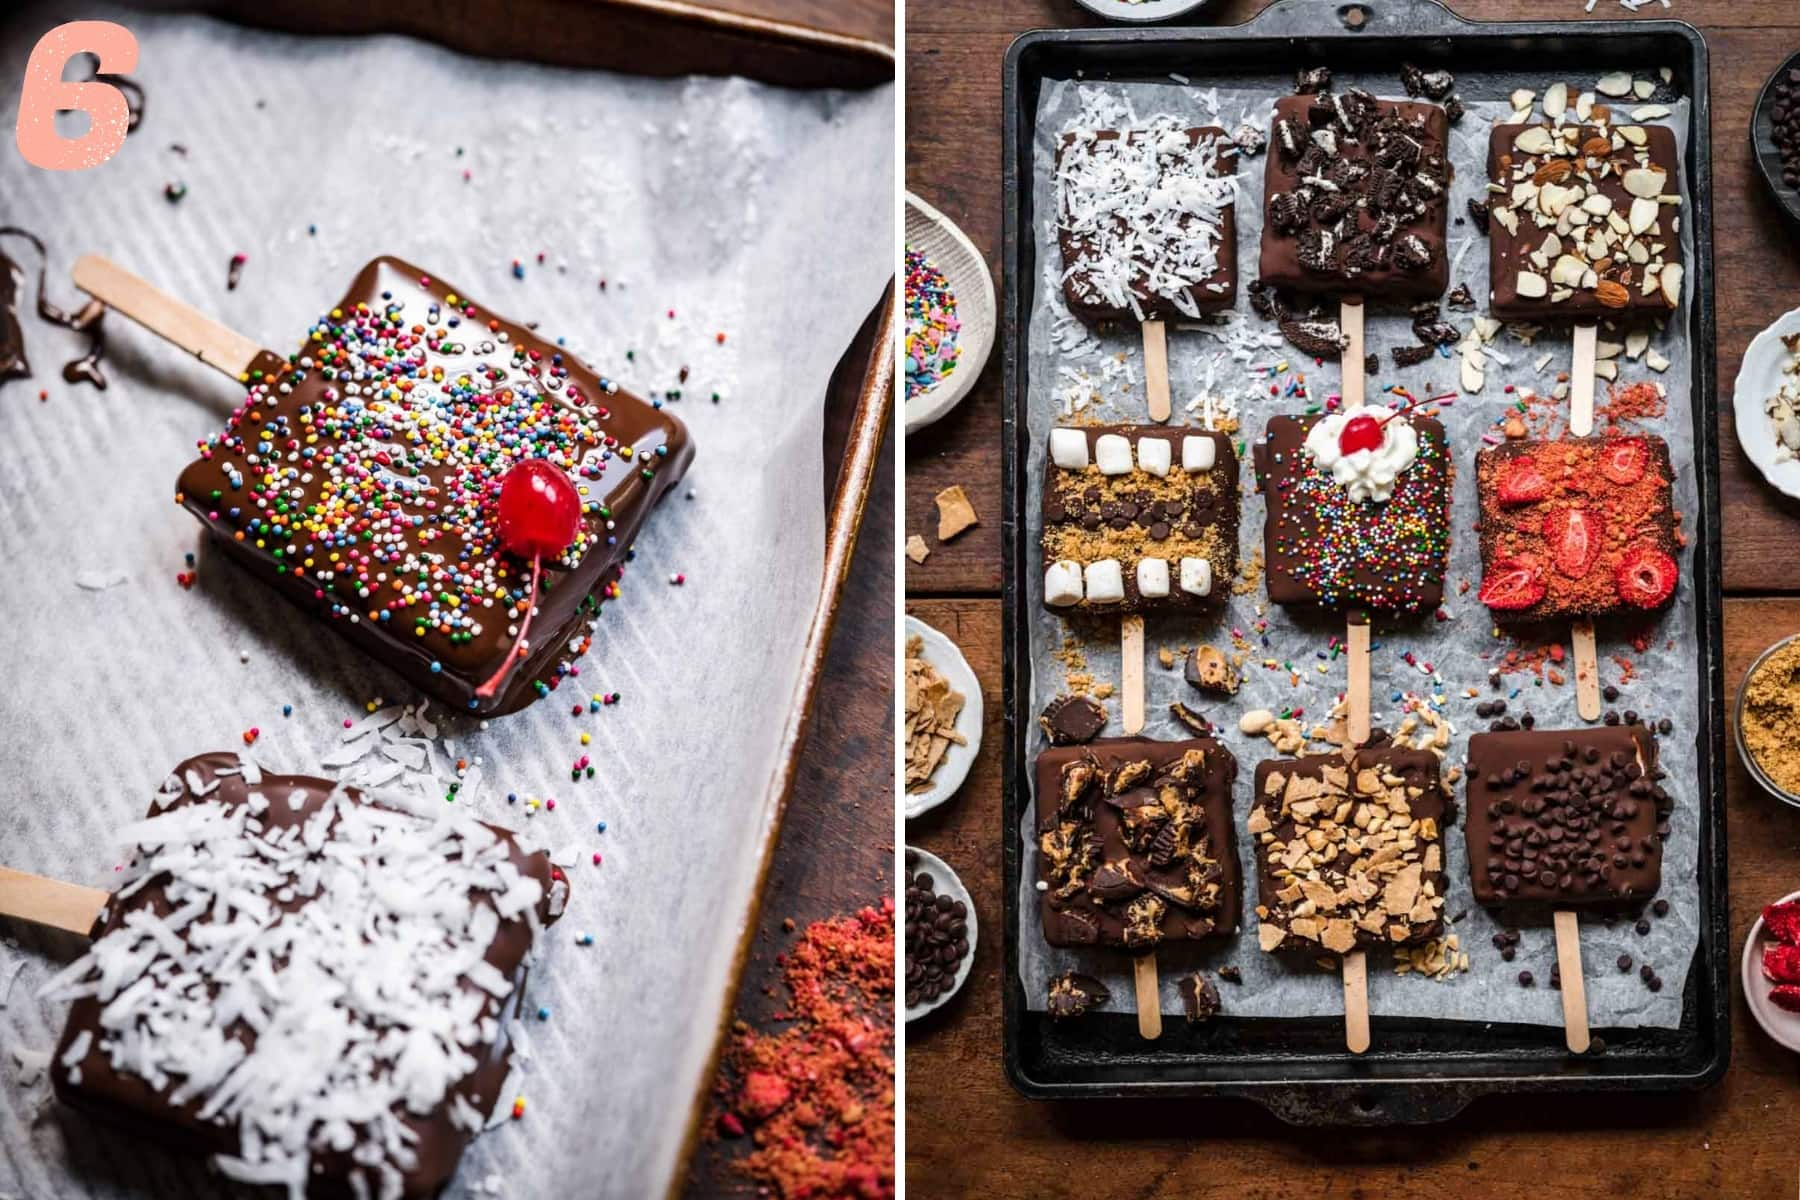 vegan ice cream bars with toppings on parchment paper.